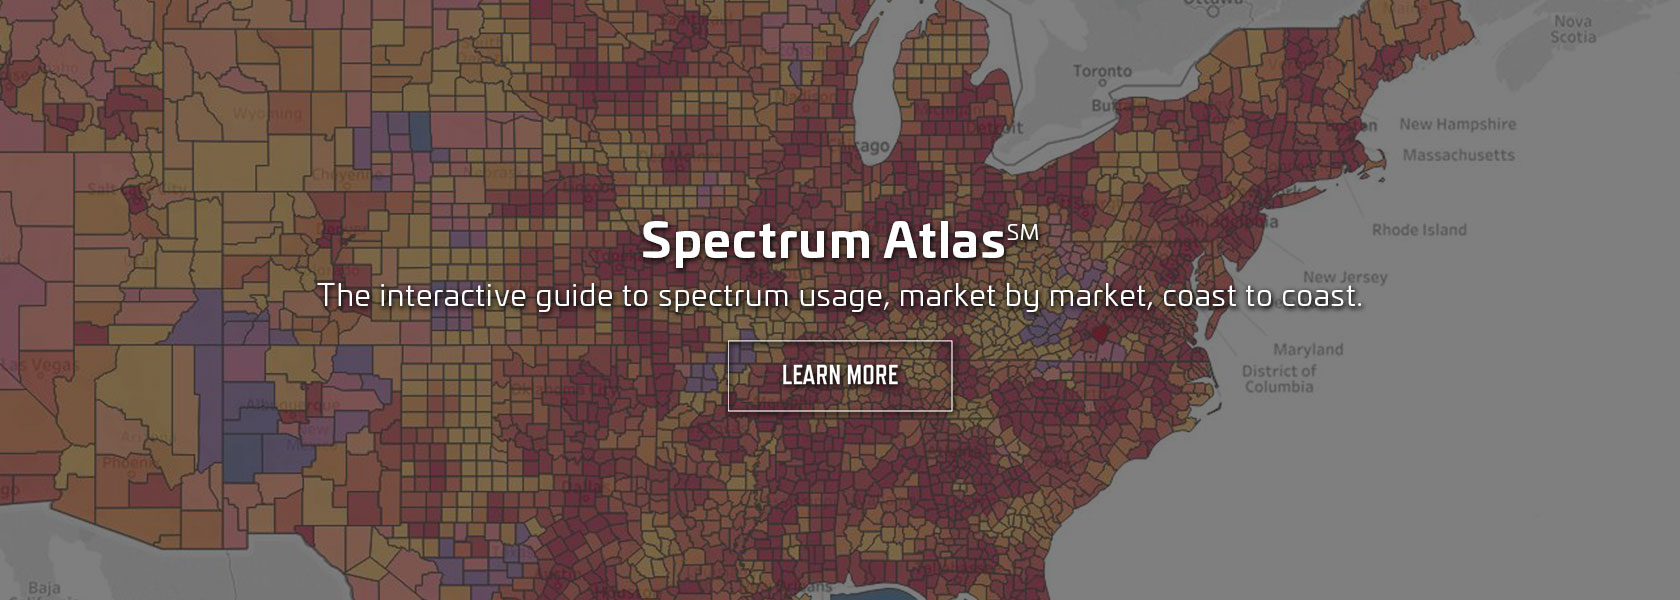 Spectrum Atlas | The interactive guide to spectrum usage, market by market, coast to coast